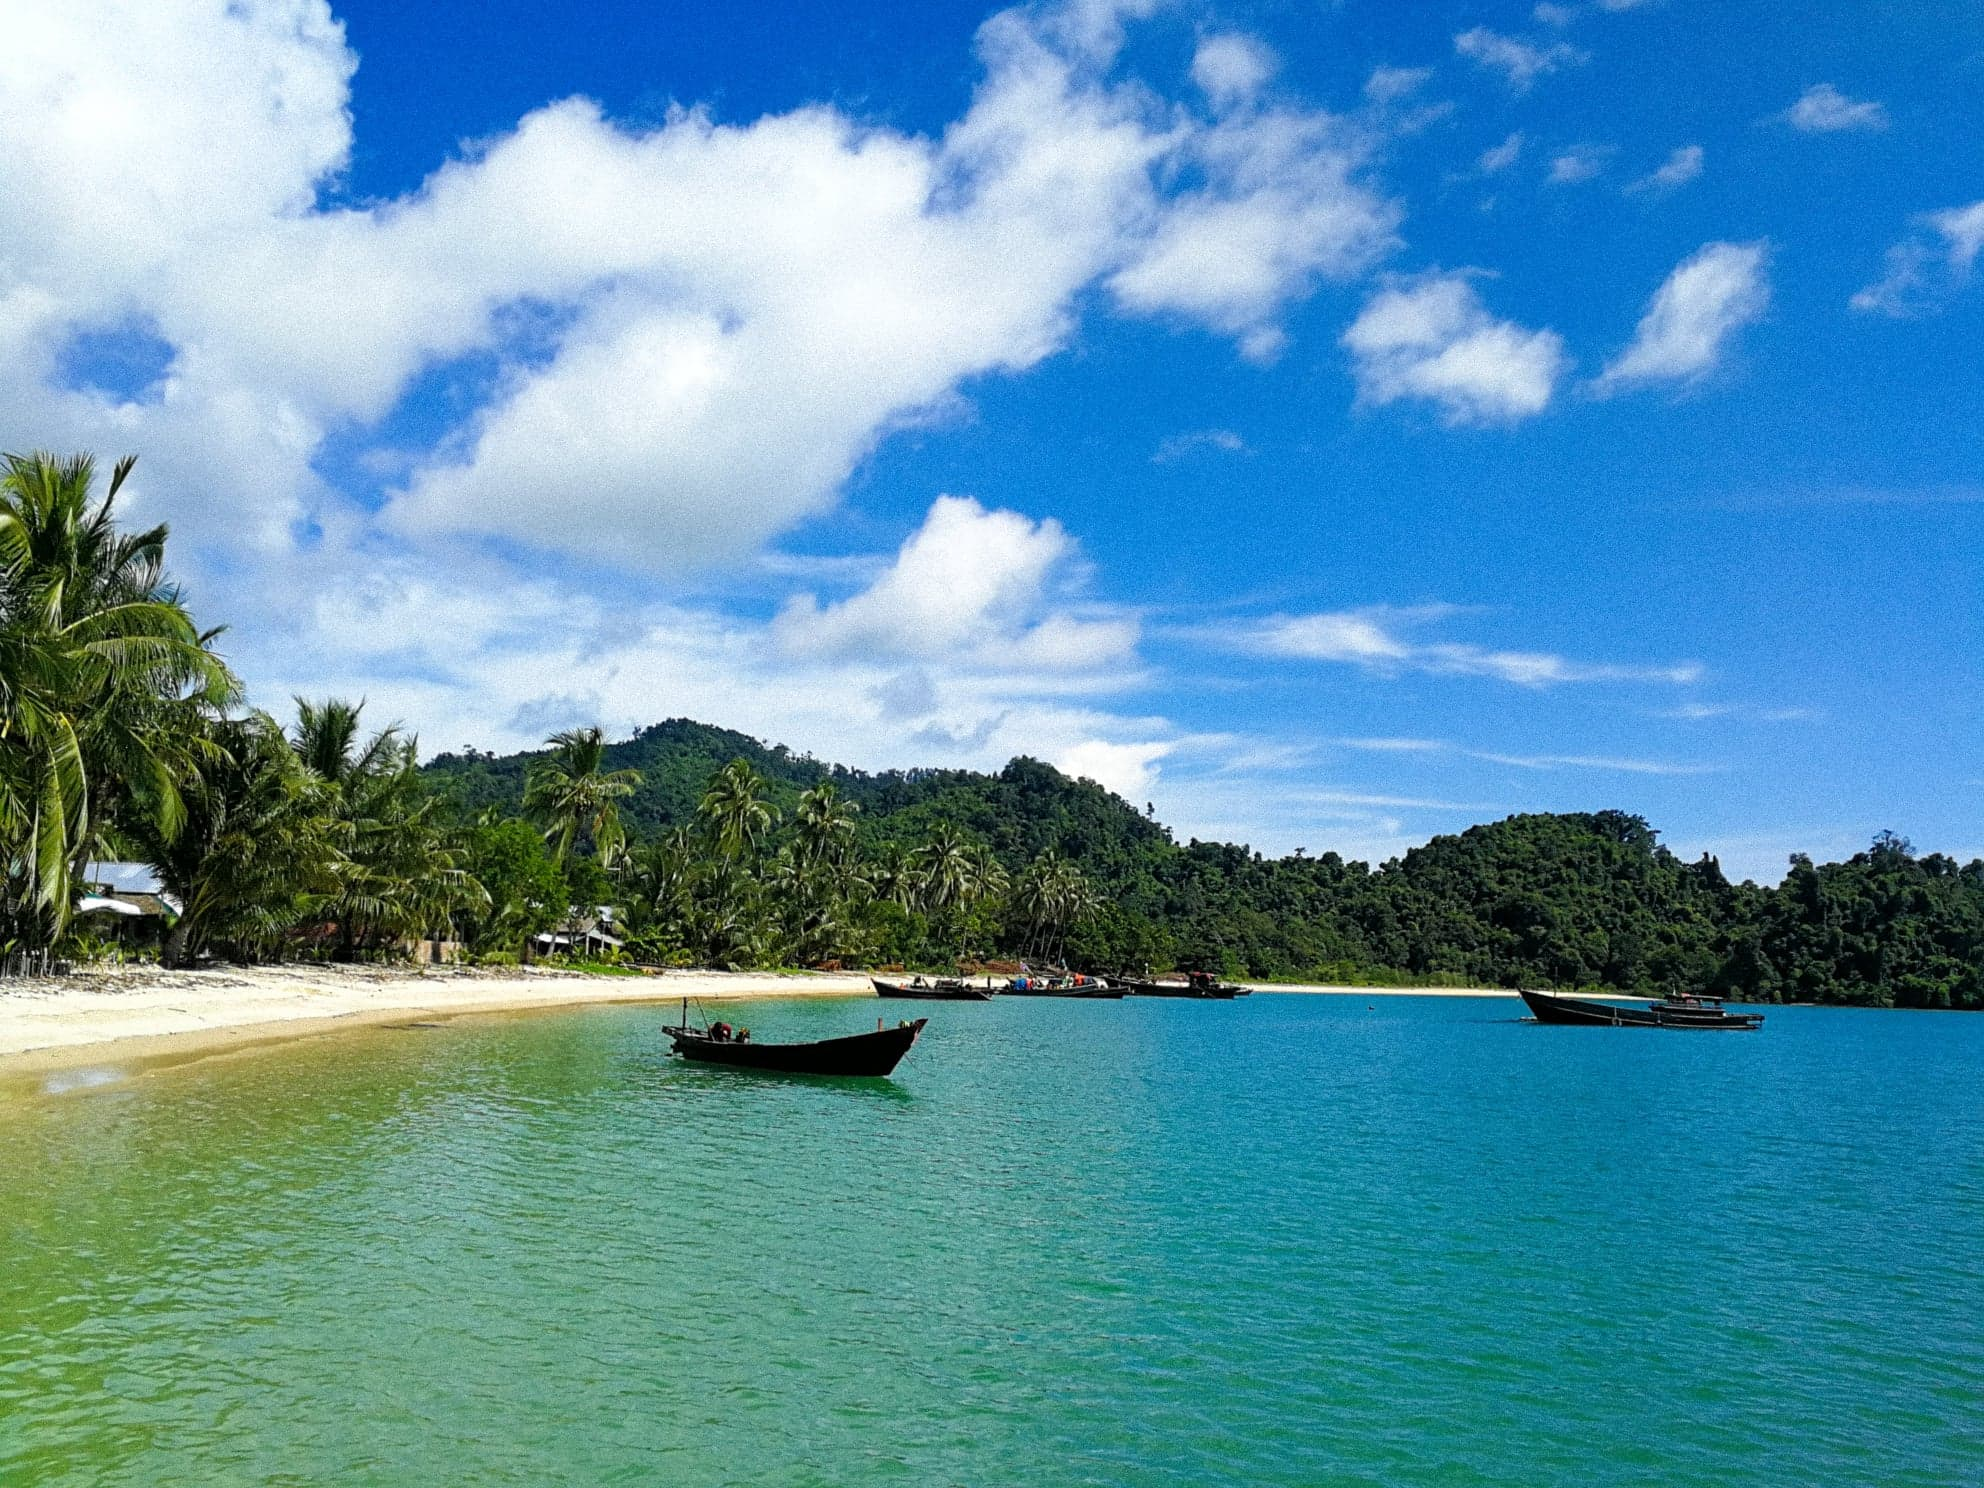 The natural beauty of Myanmar's Mergui Archipelago is unbelievable.